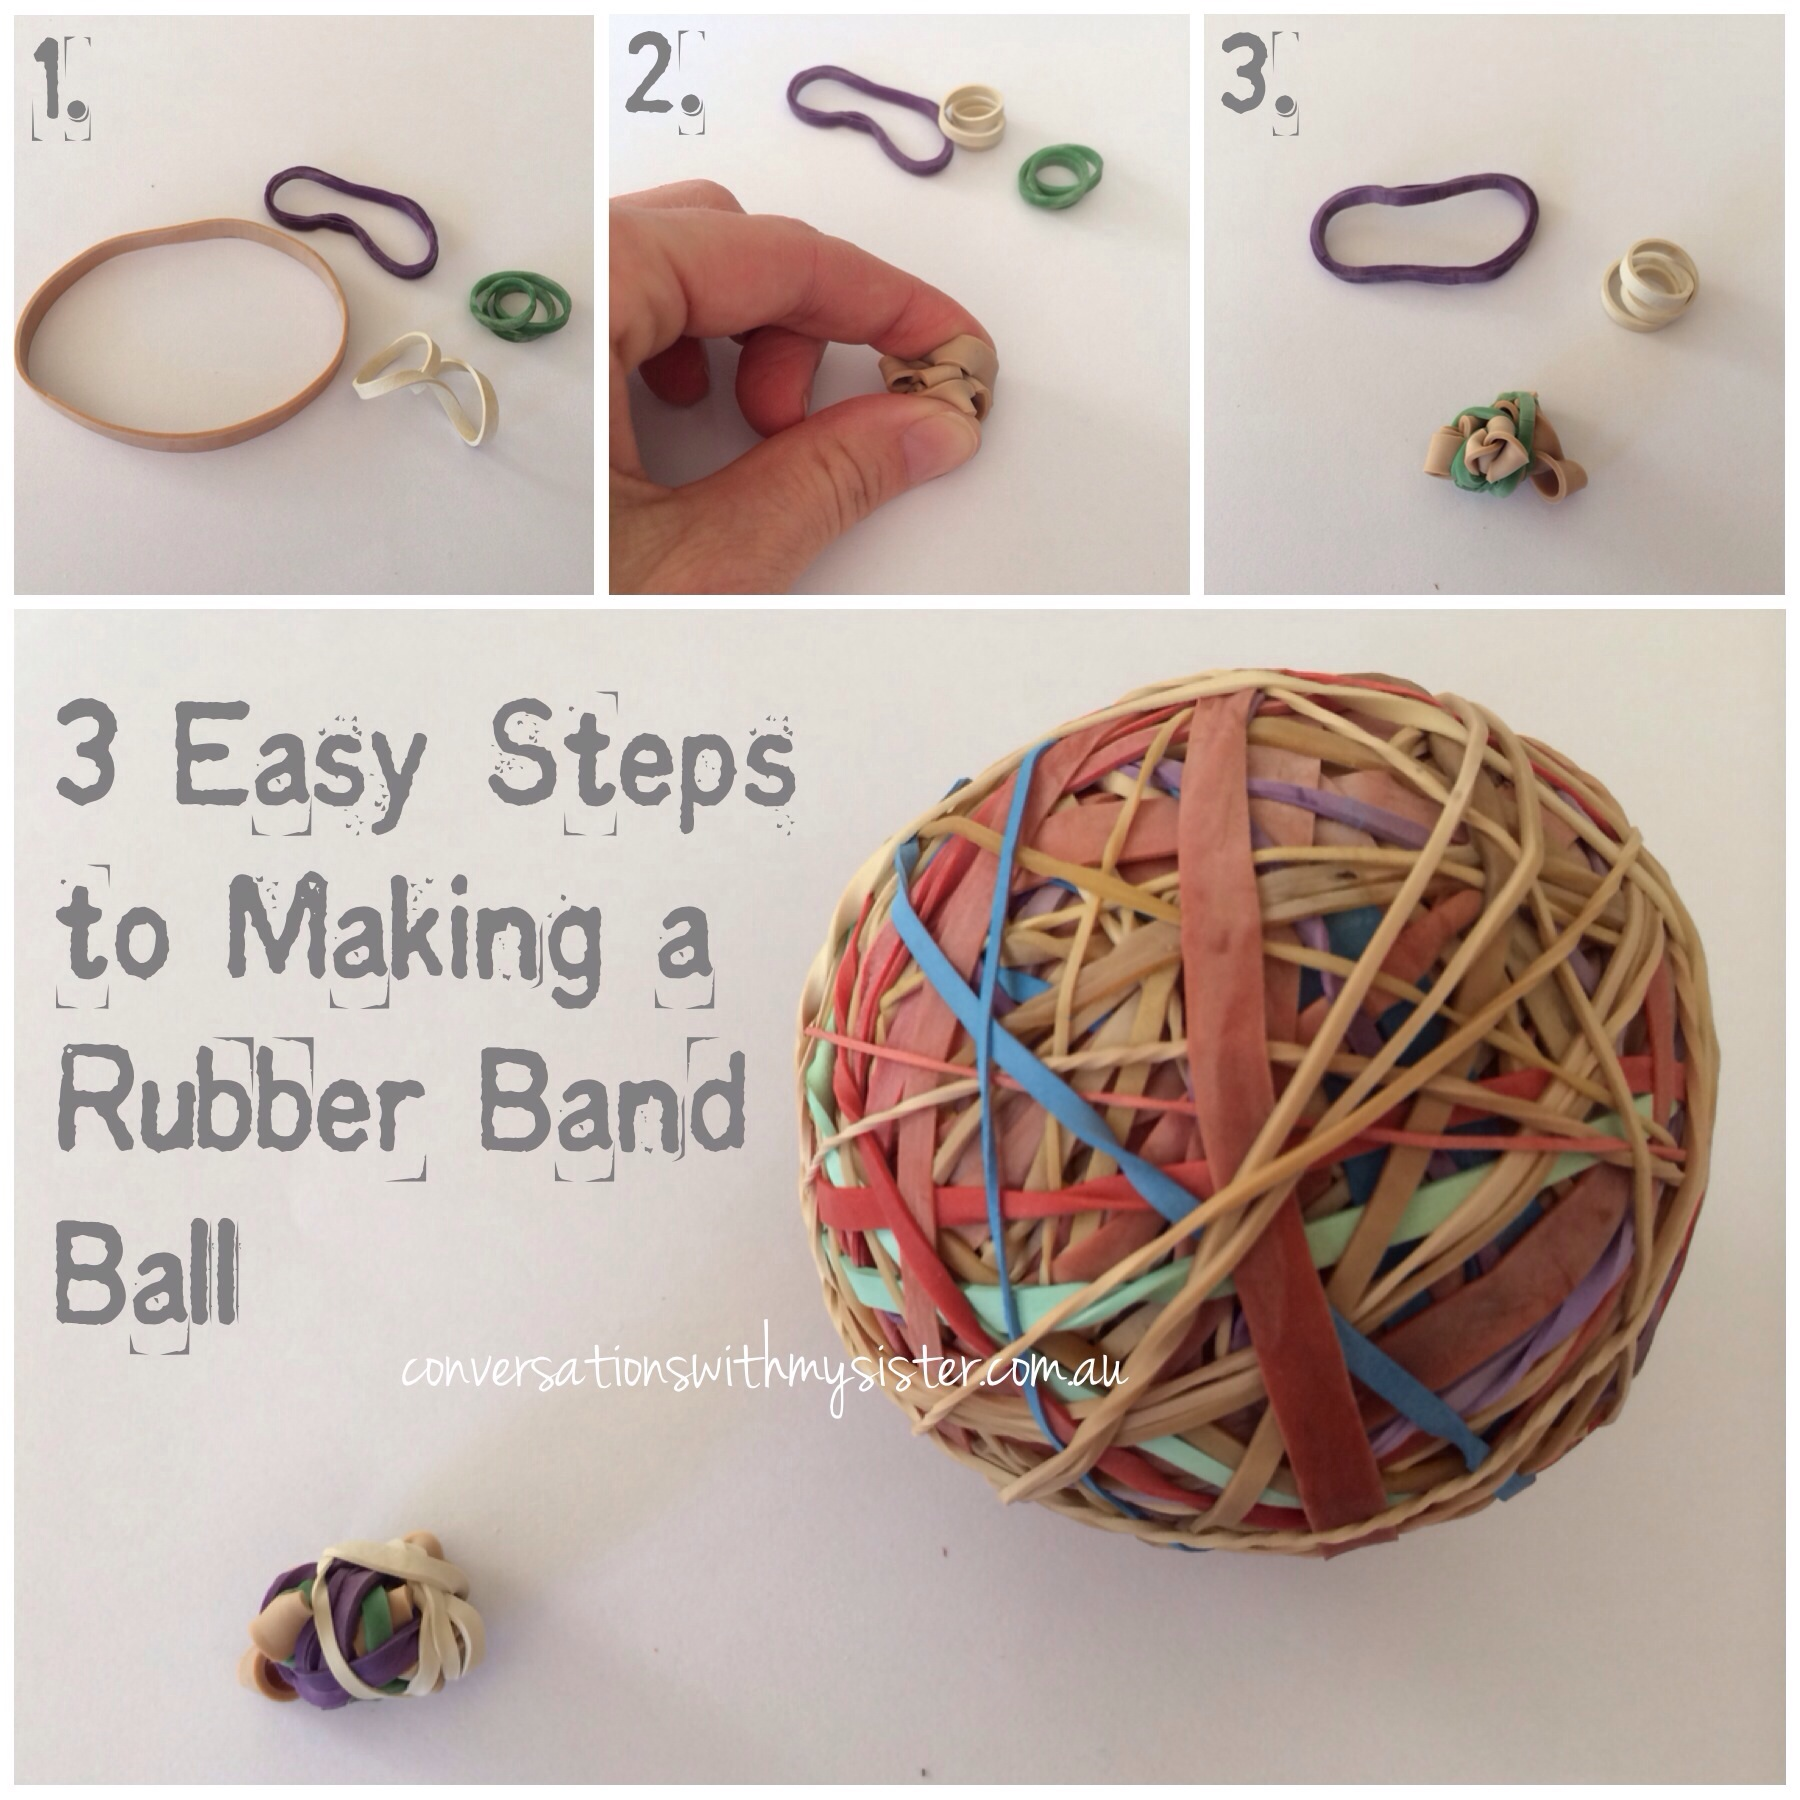 || 3 Easy Steps to Making a Rubber Band Ball || conversationswithmysister.com.au